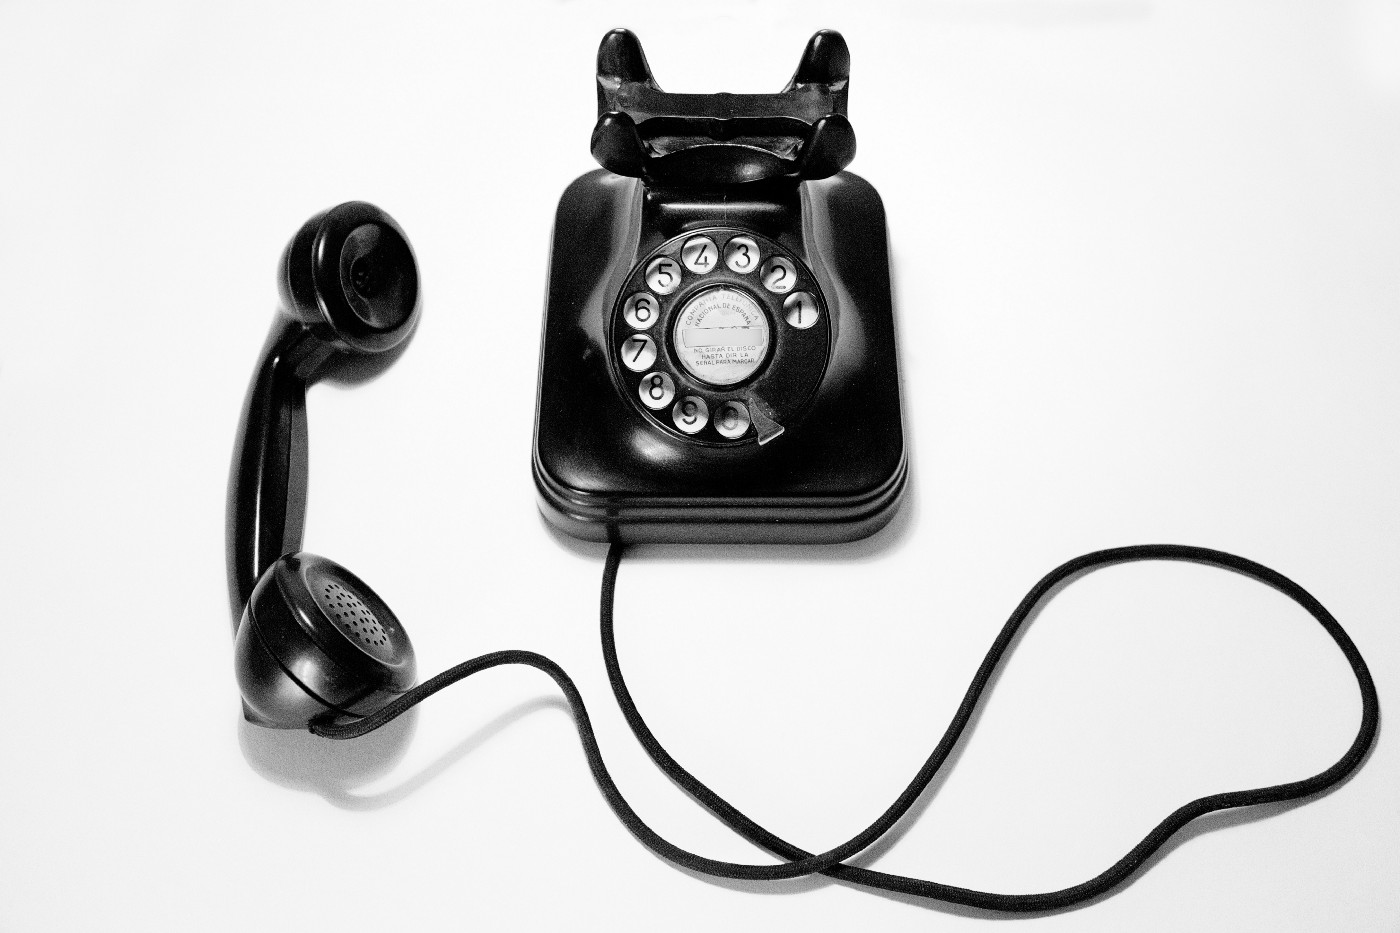 Old rotary telephone in black and white